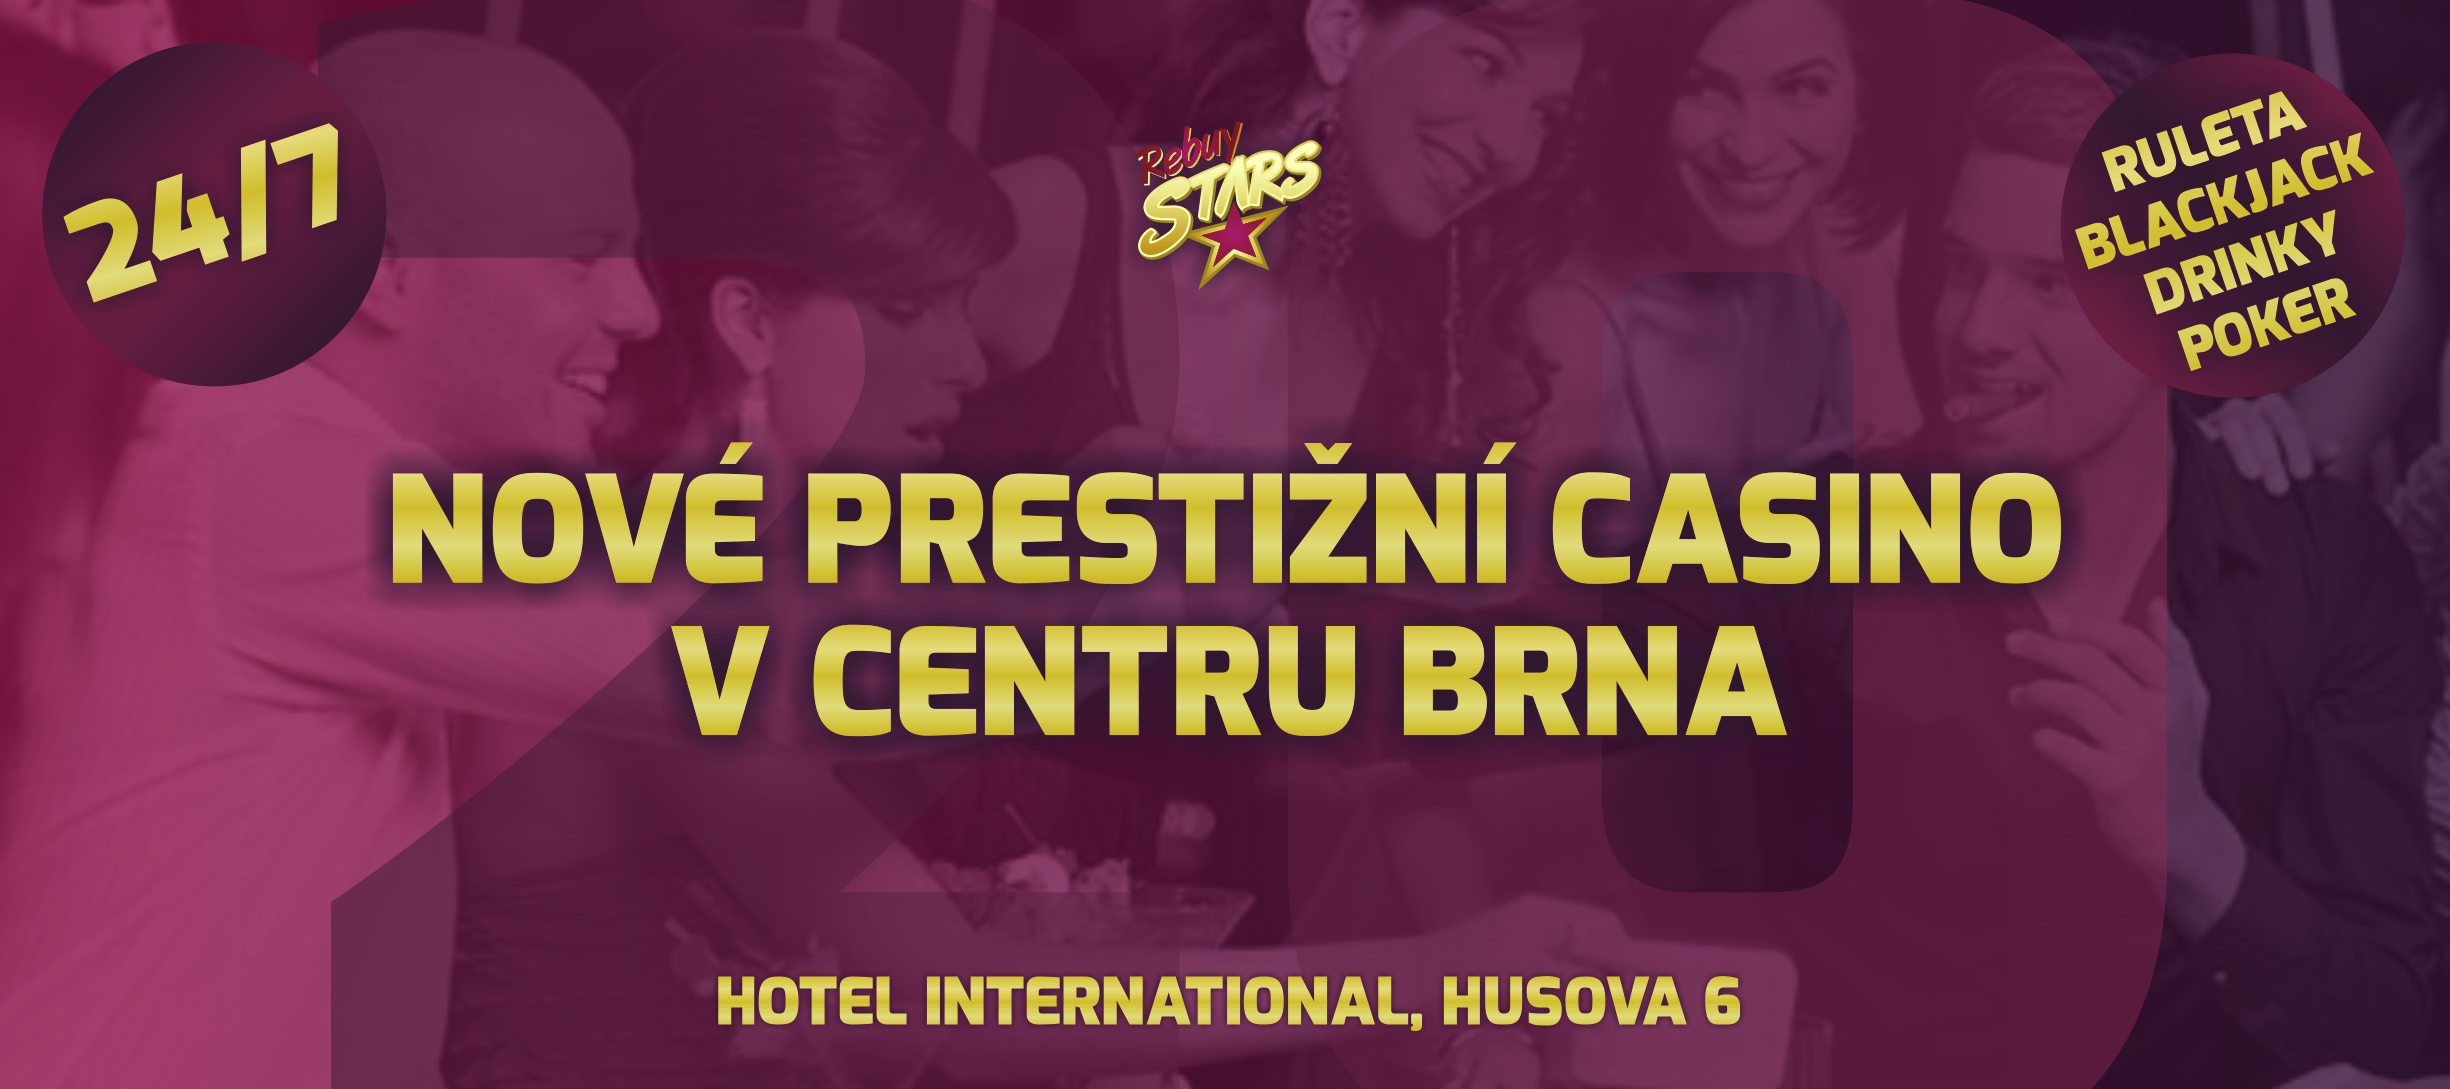 rebuy stars - casino - brno - hotel international - coming soon